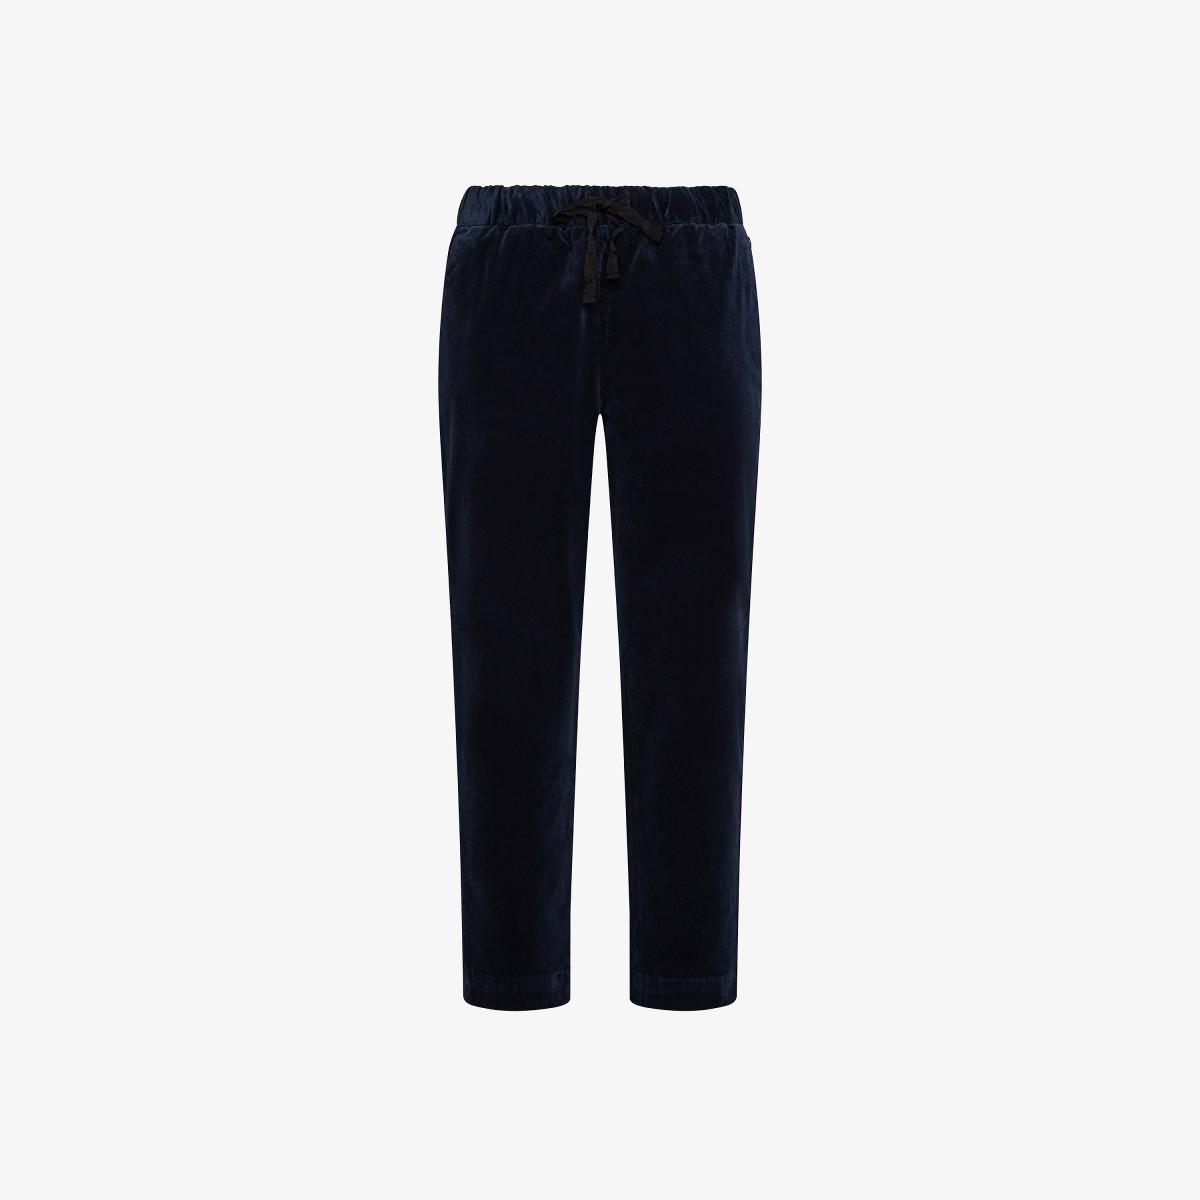 PANT CORDUROY WITH ELASTIC NAVY BLUE